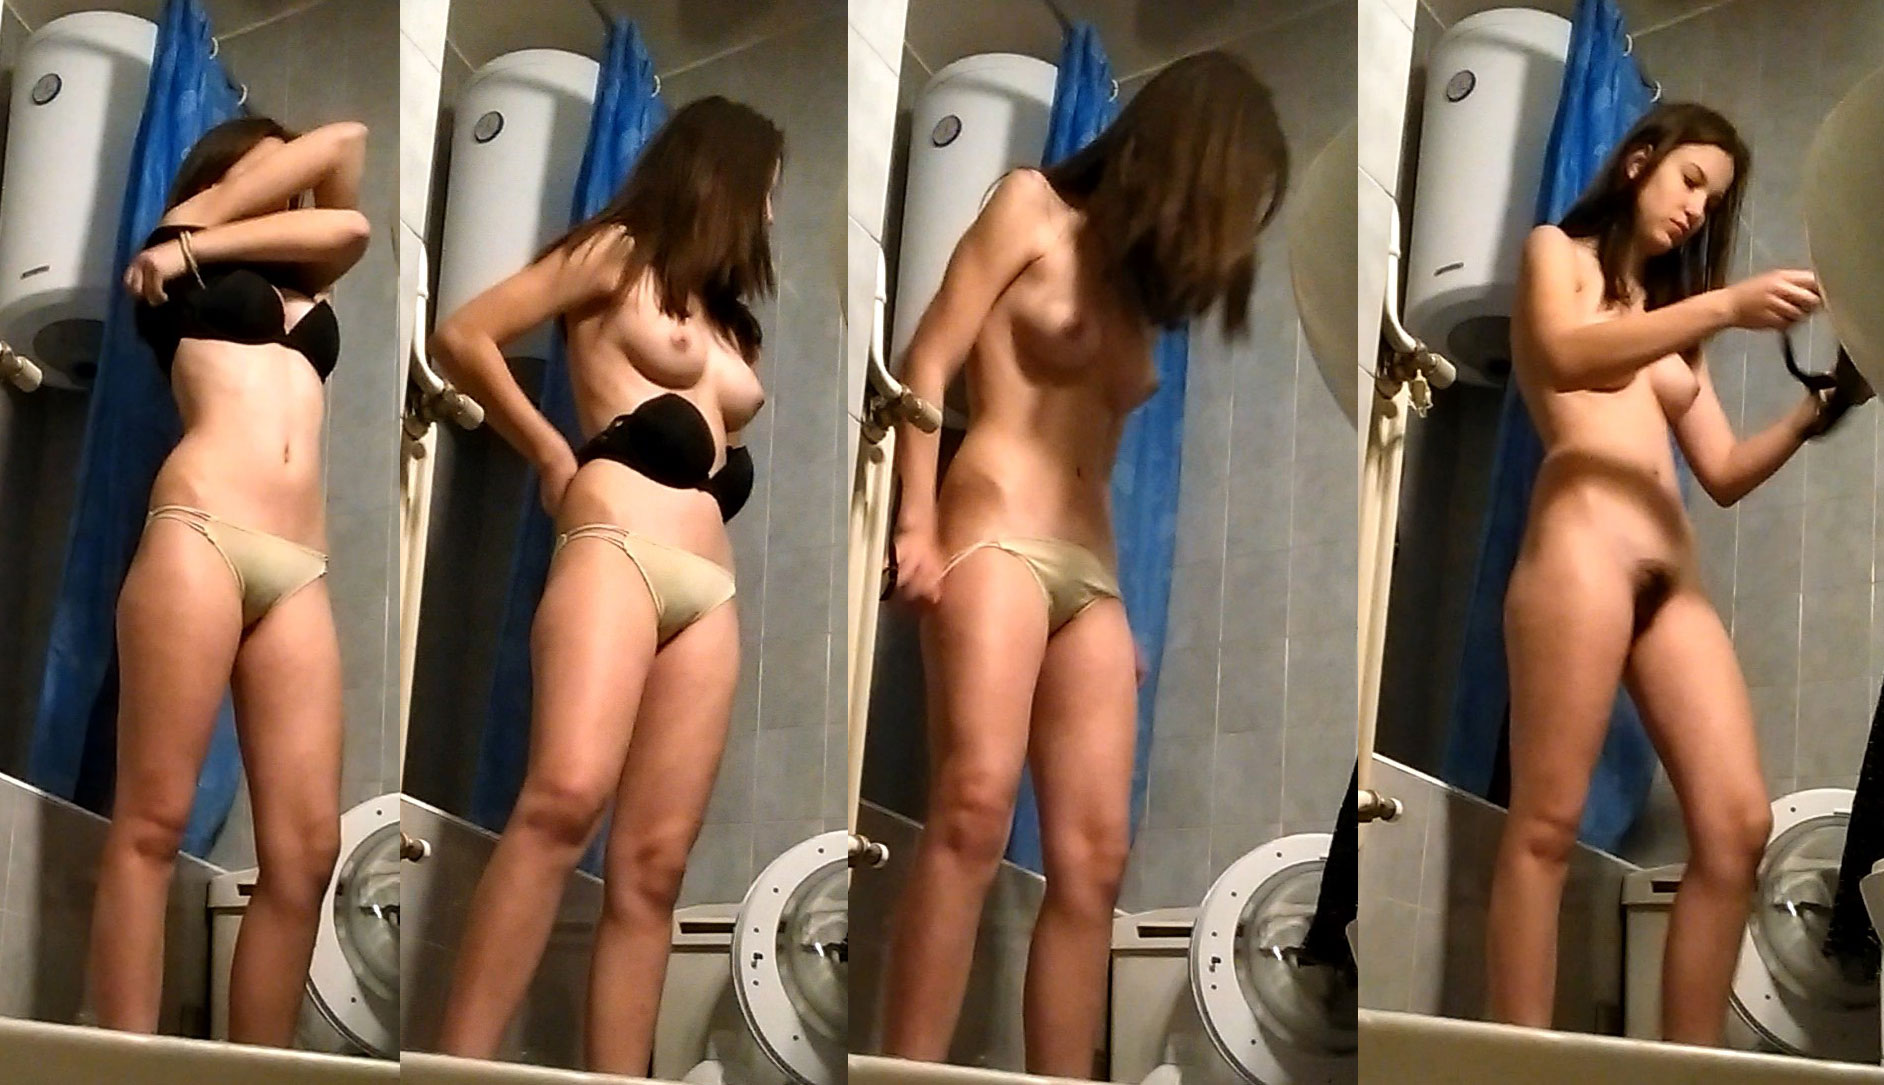 Nude Girls In Changing Rooms